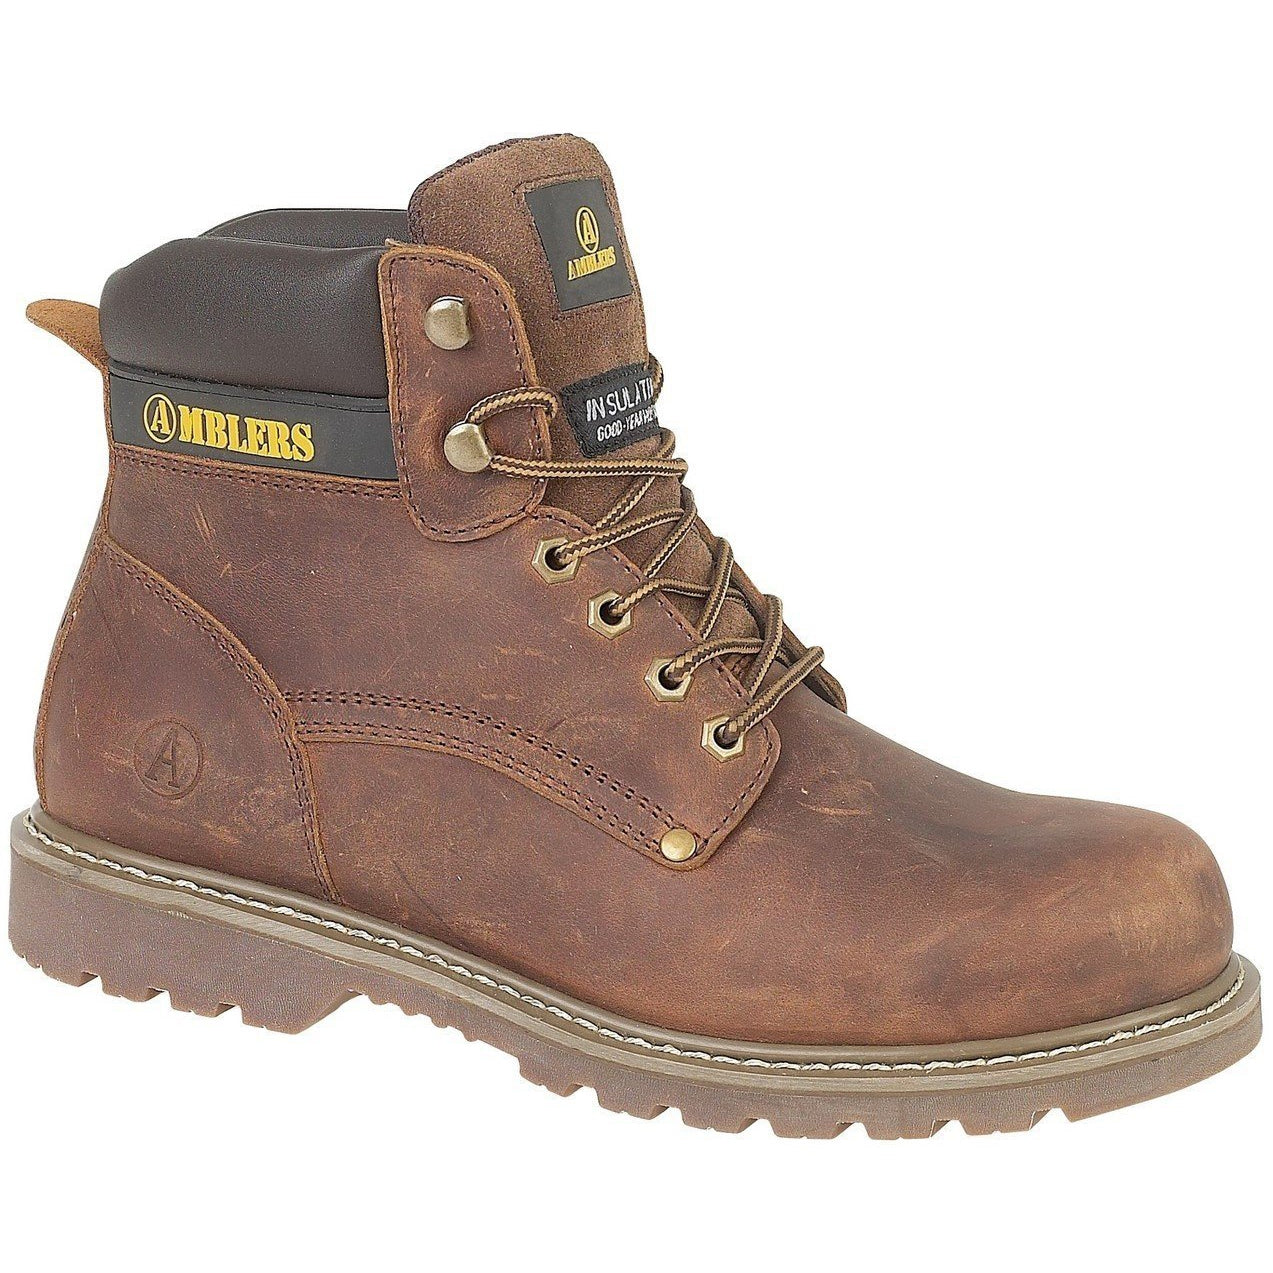 Amblers Dorking Lace Up Boots